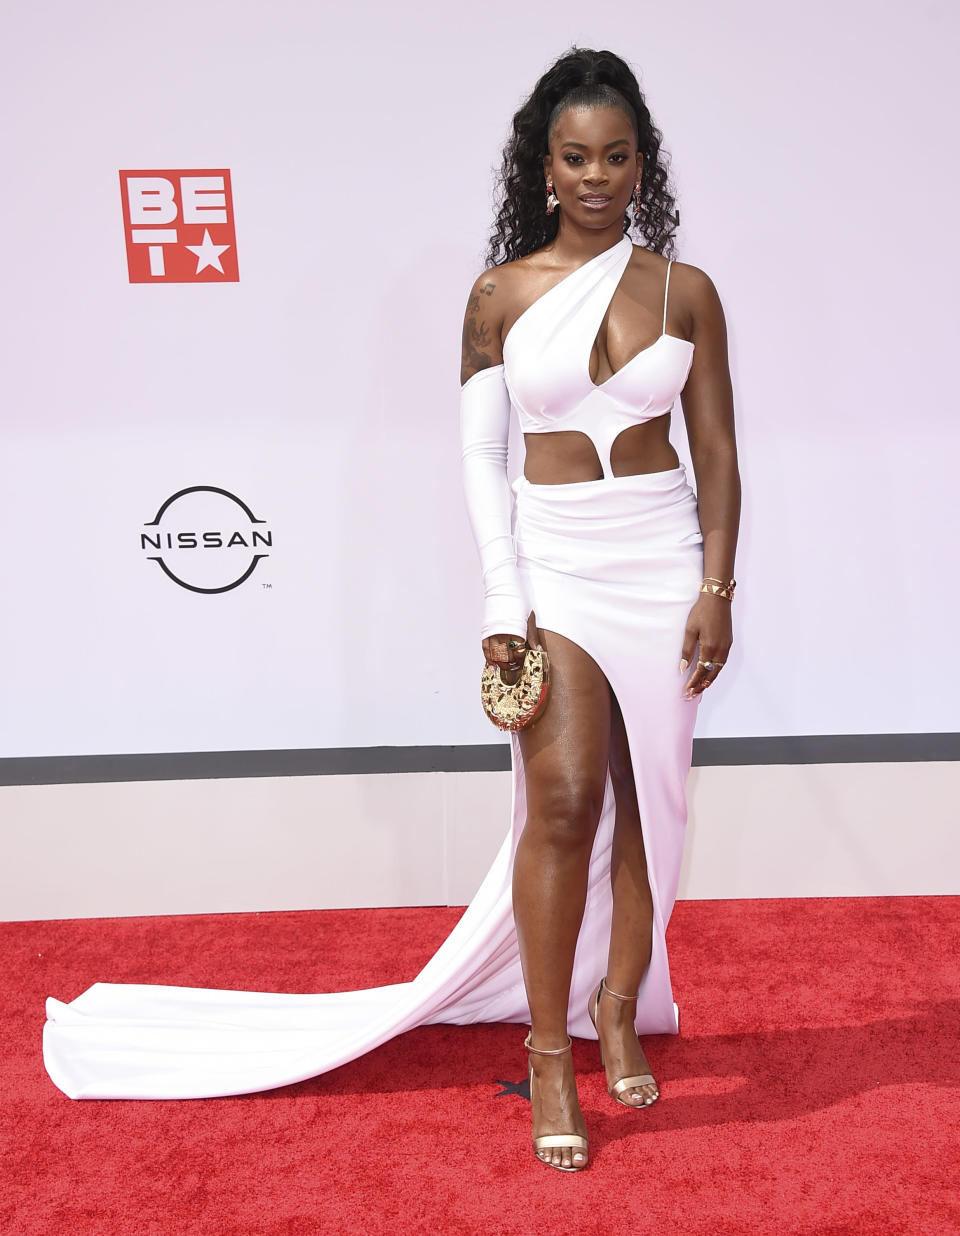 Ari Lennox arrives at the BET Awards on Sunday, June 27, 2021, at the Microsoft Theater in Los Angeles. (Photo by Jordan Strauss/Invision/AP)